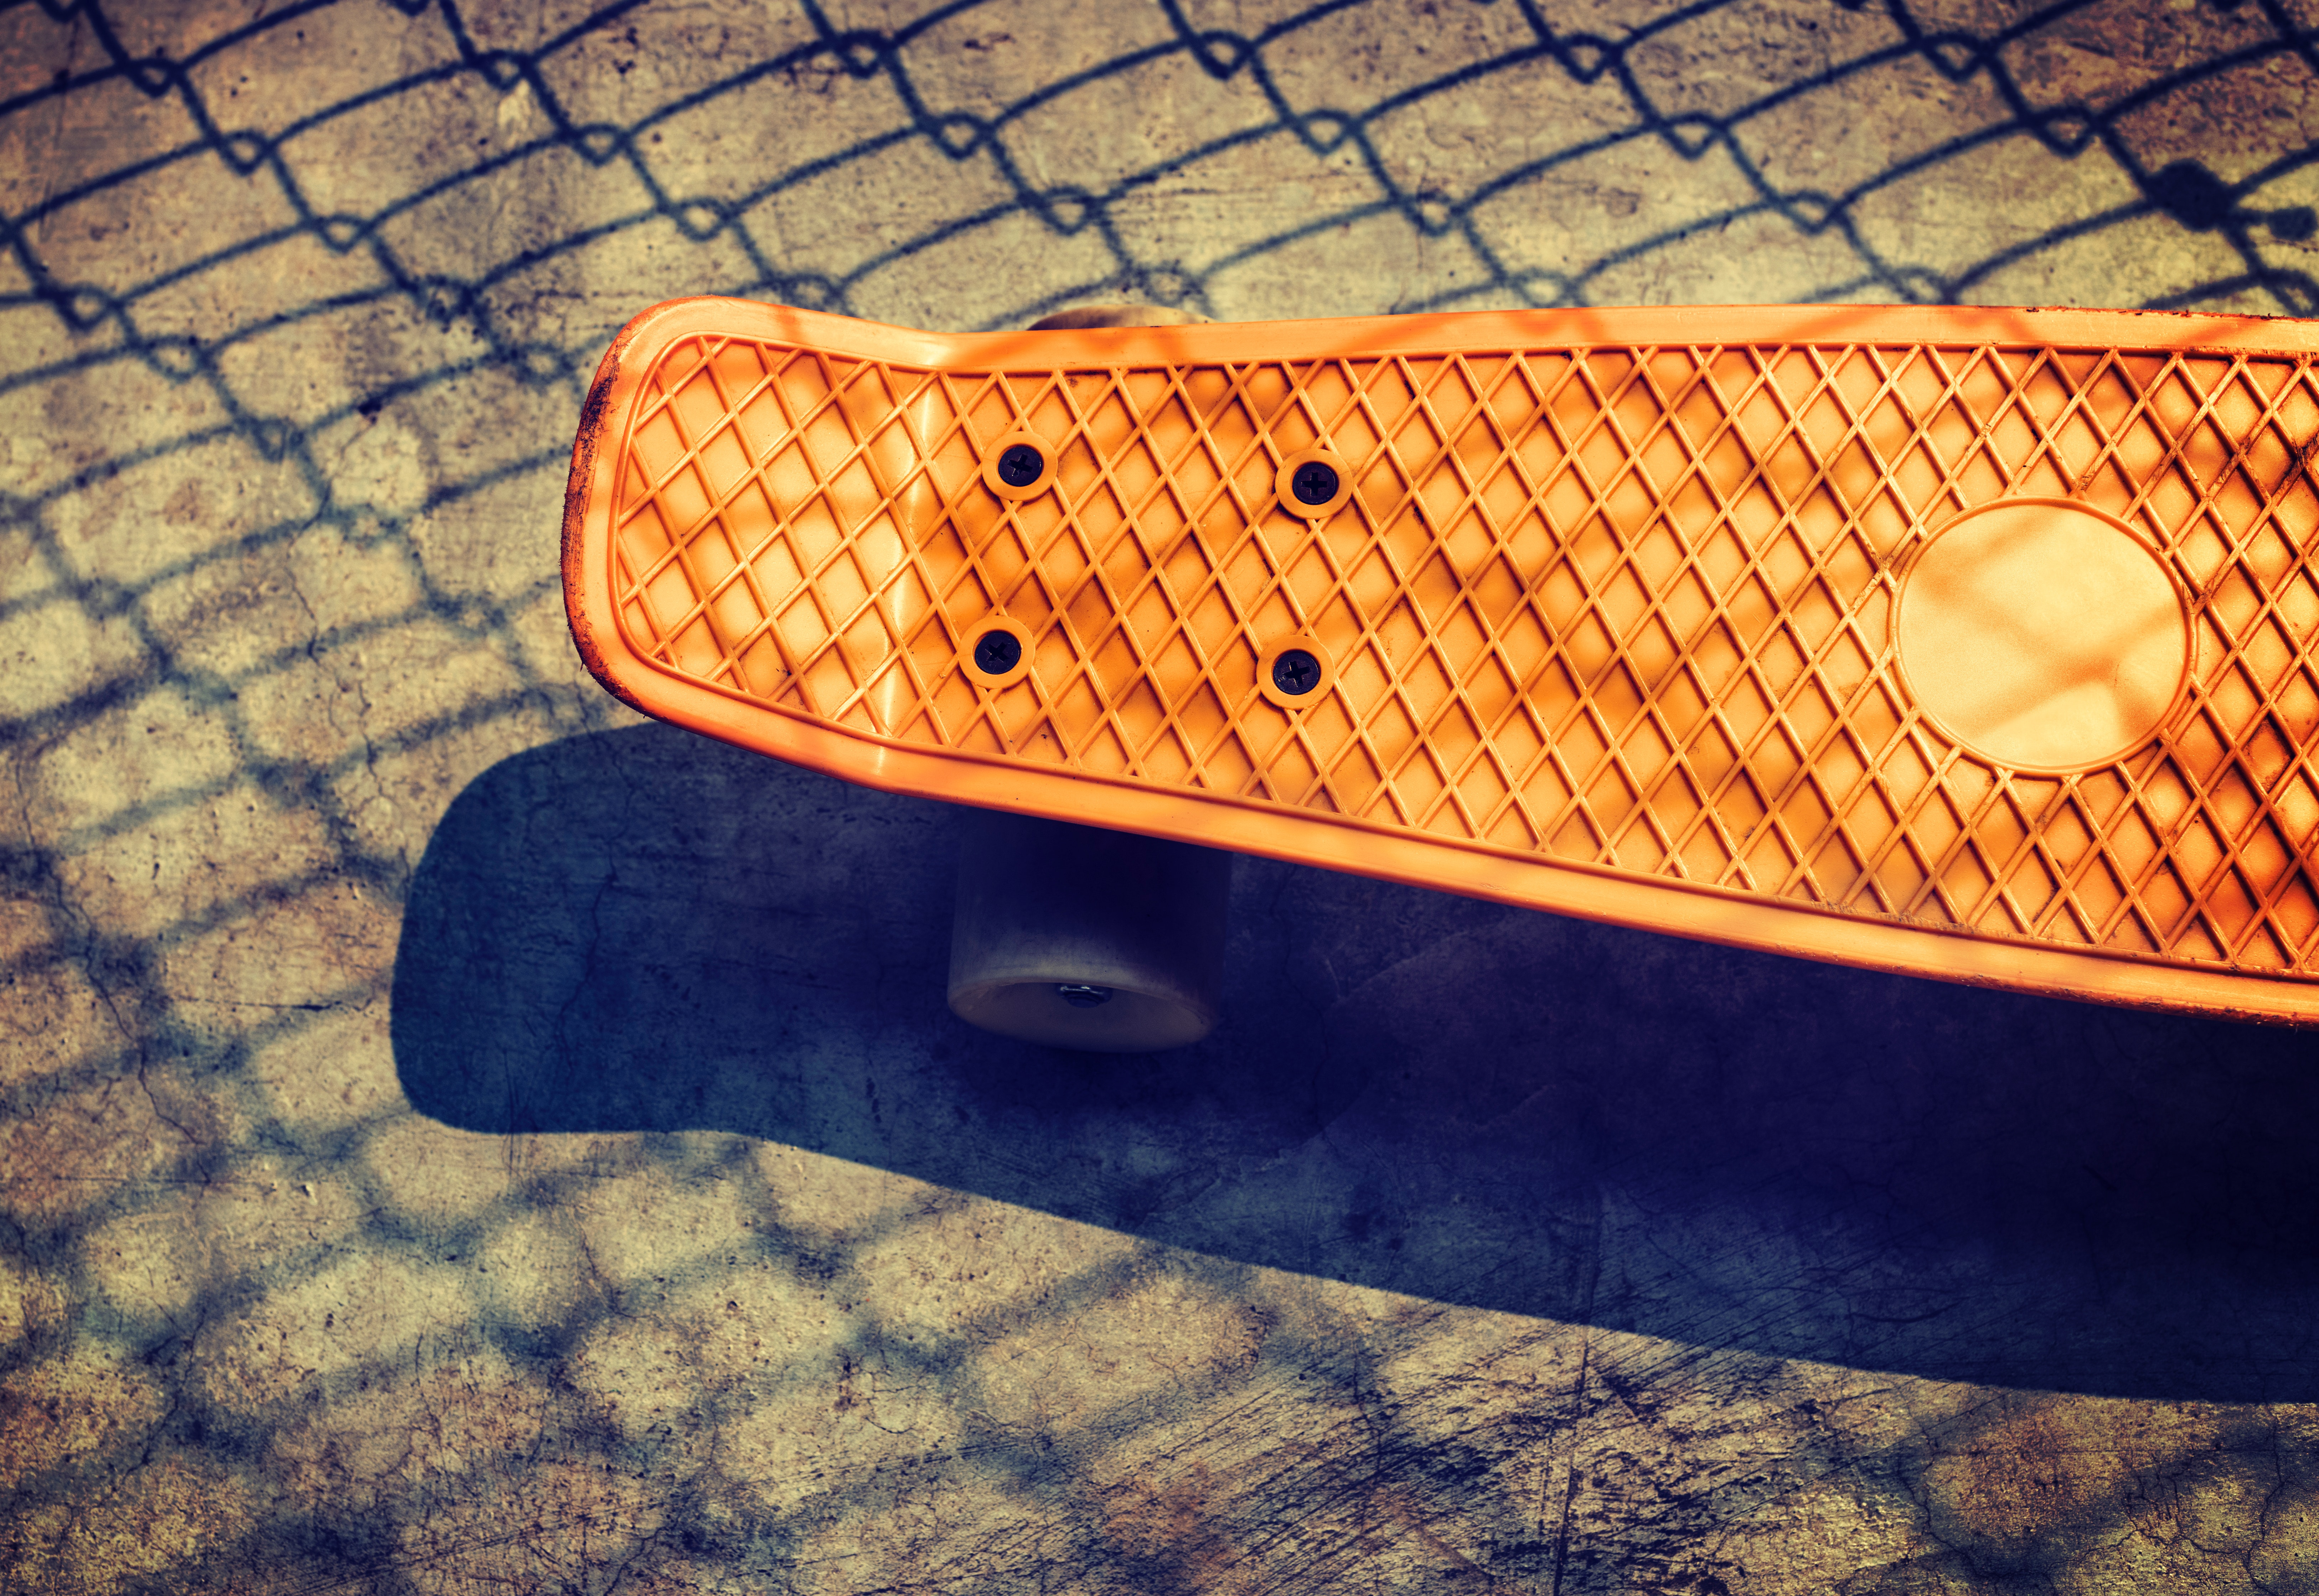 High Angle View of a Skateboard, Activity, Recreation, Sunlight, Summer, HQ Photo